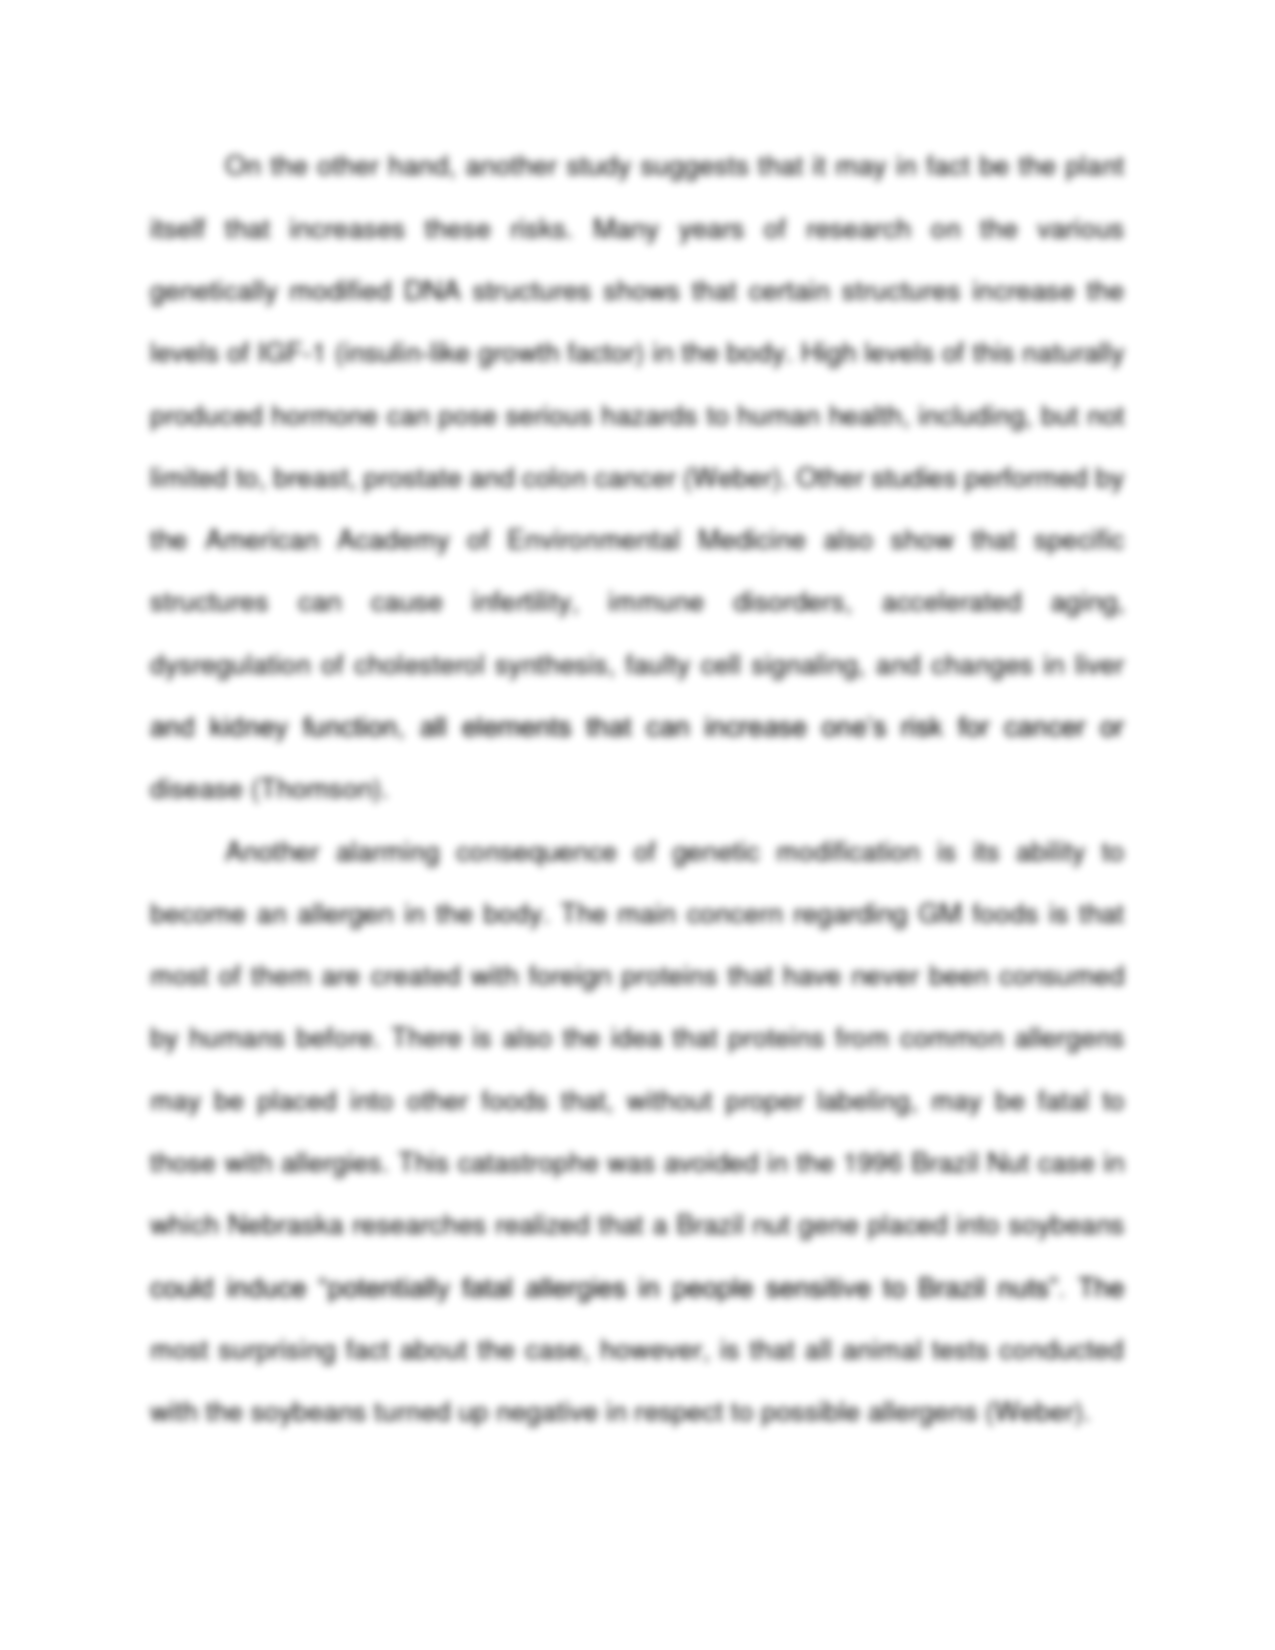 Planning Essays Research Essay On Genetically Modified Food Persuasive Essay Speech Topics also Expositive Essay Research Essay On Genetically Modified Food  There Was A Problem  Persuasive Essay On Death Penalty